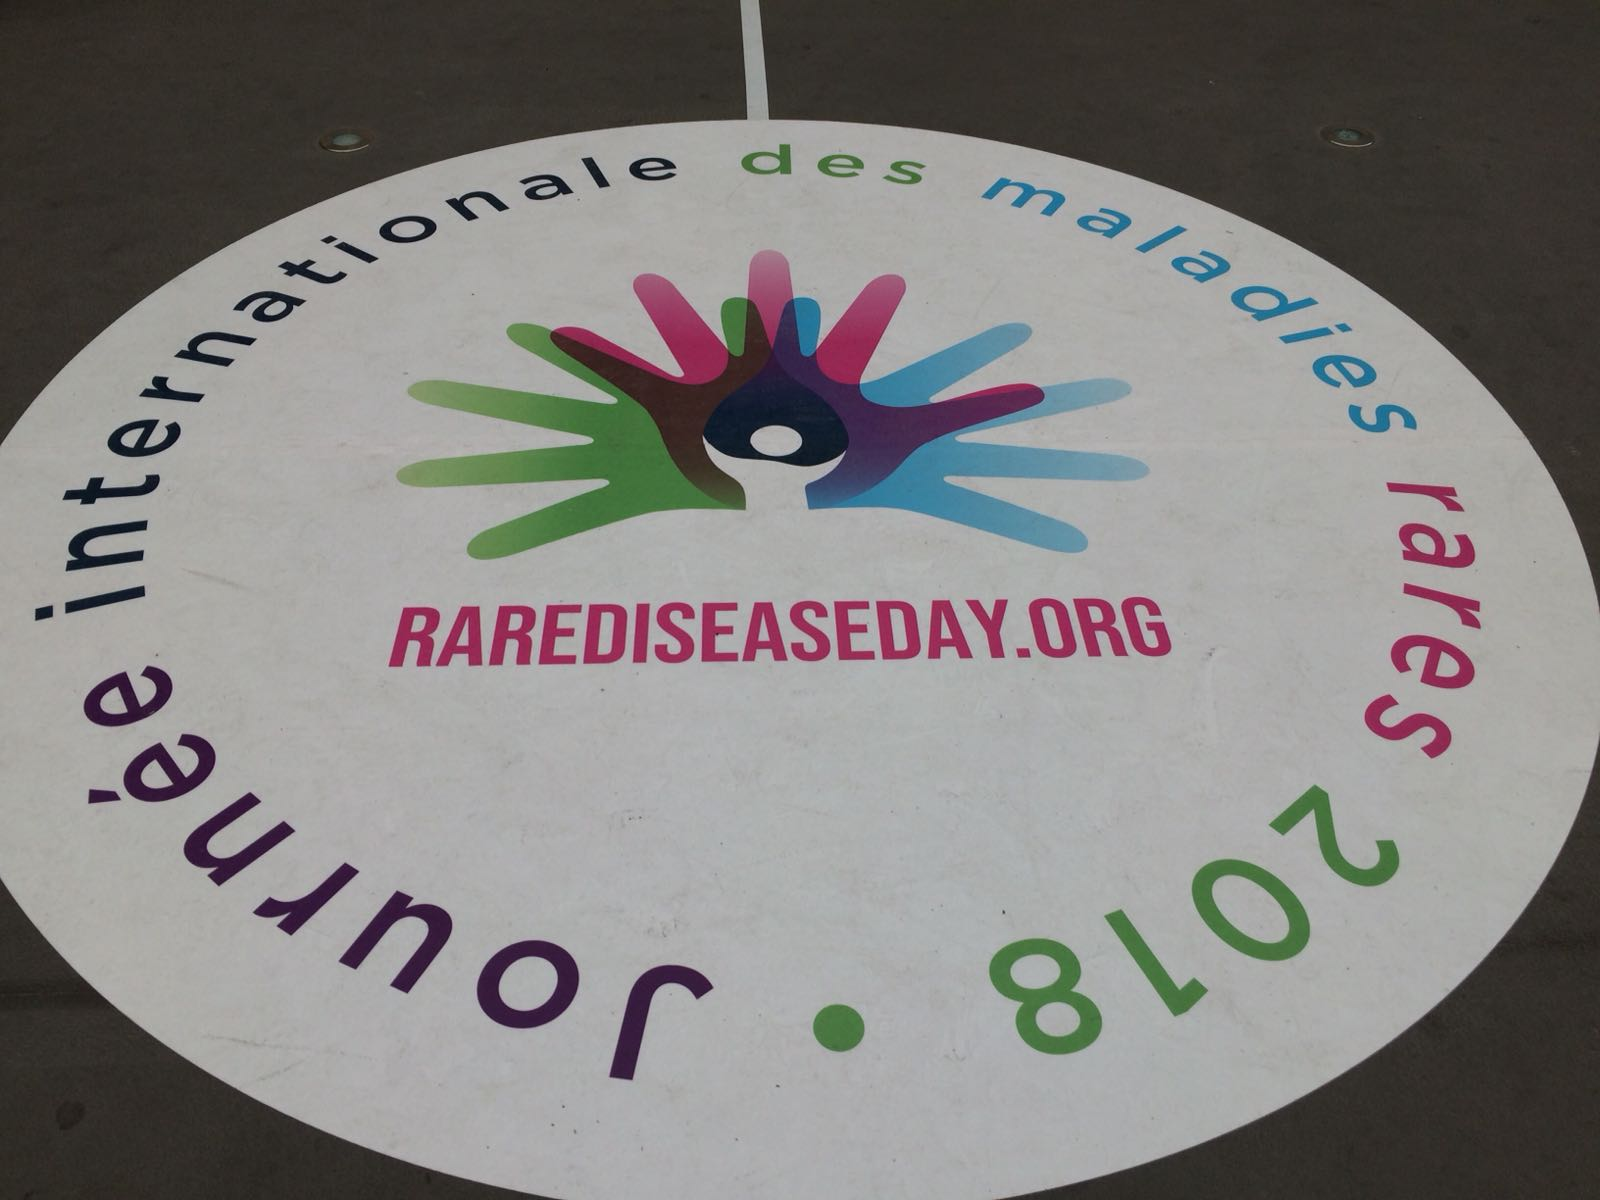 A look back at Rare Disease Day 2018